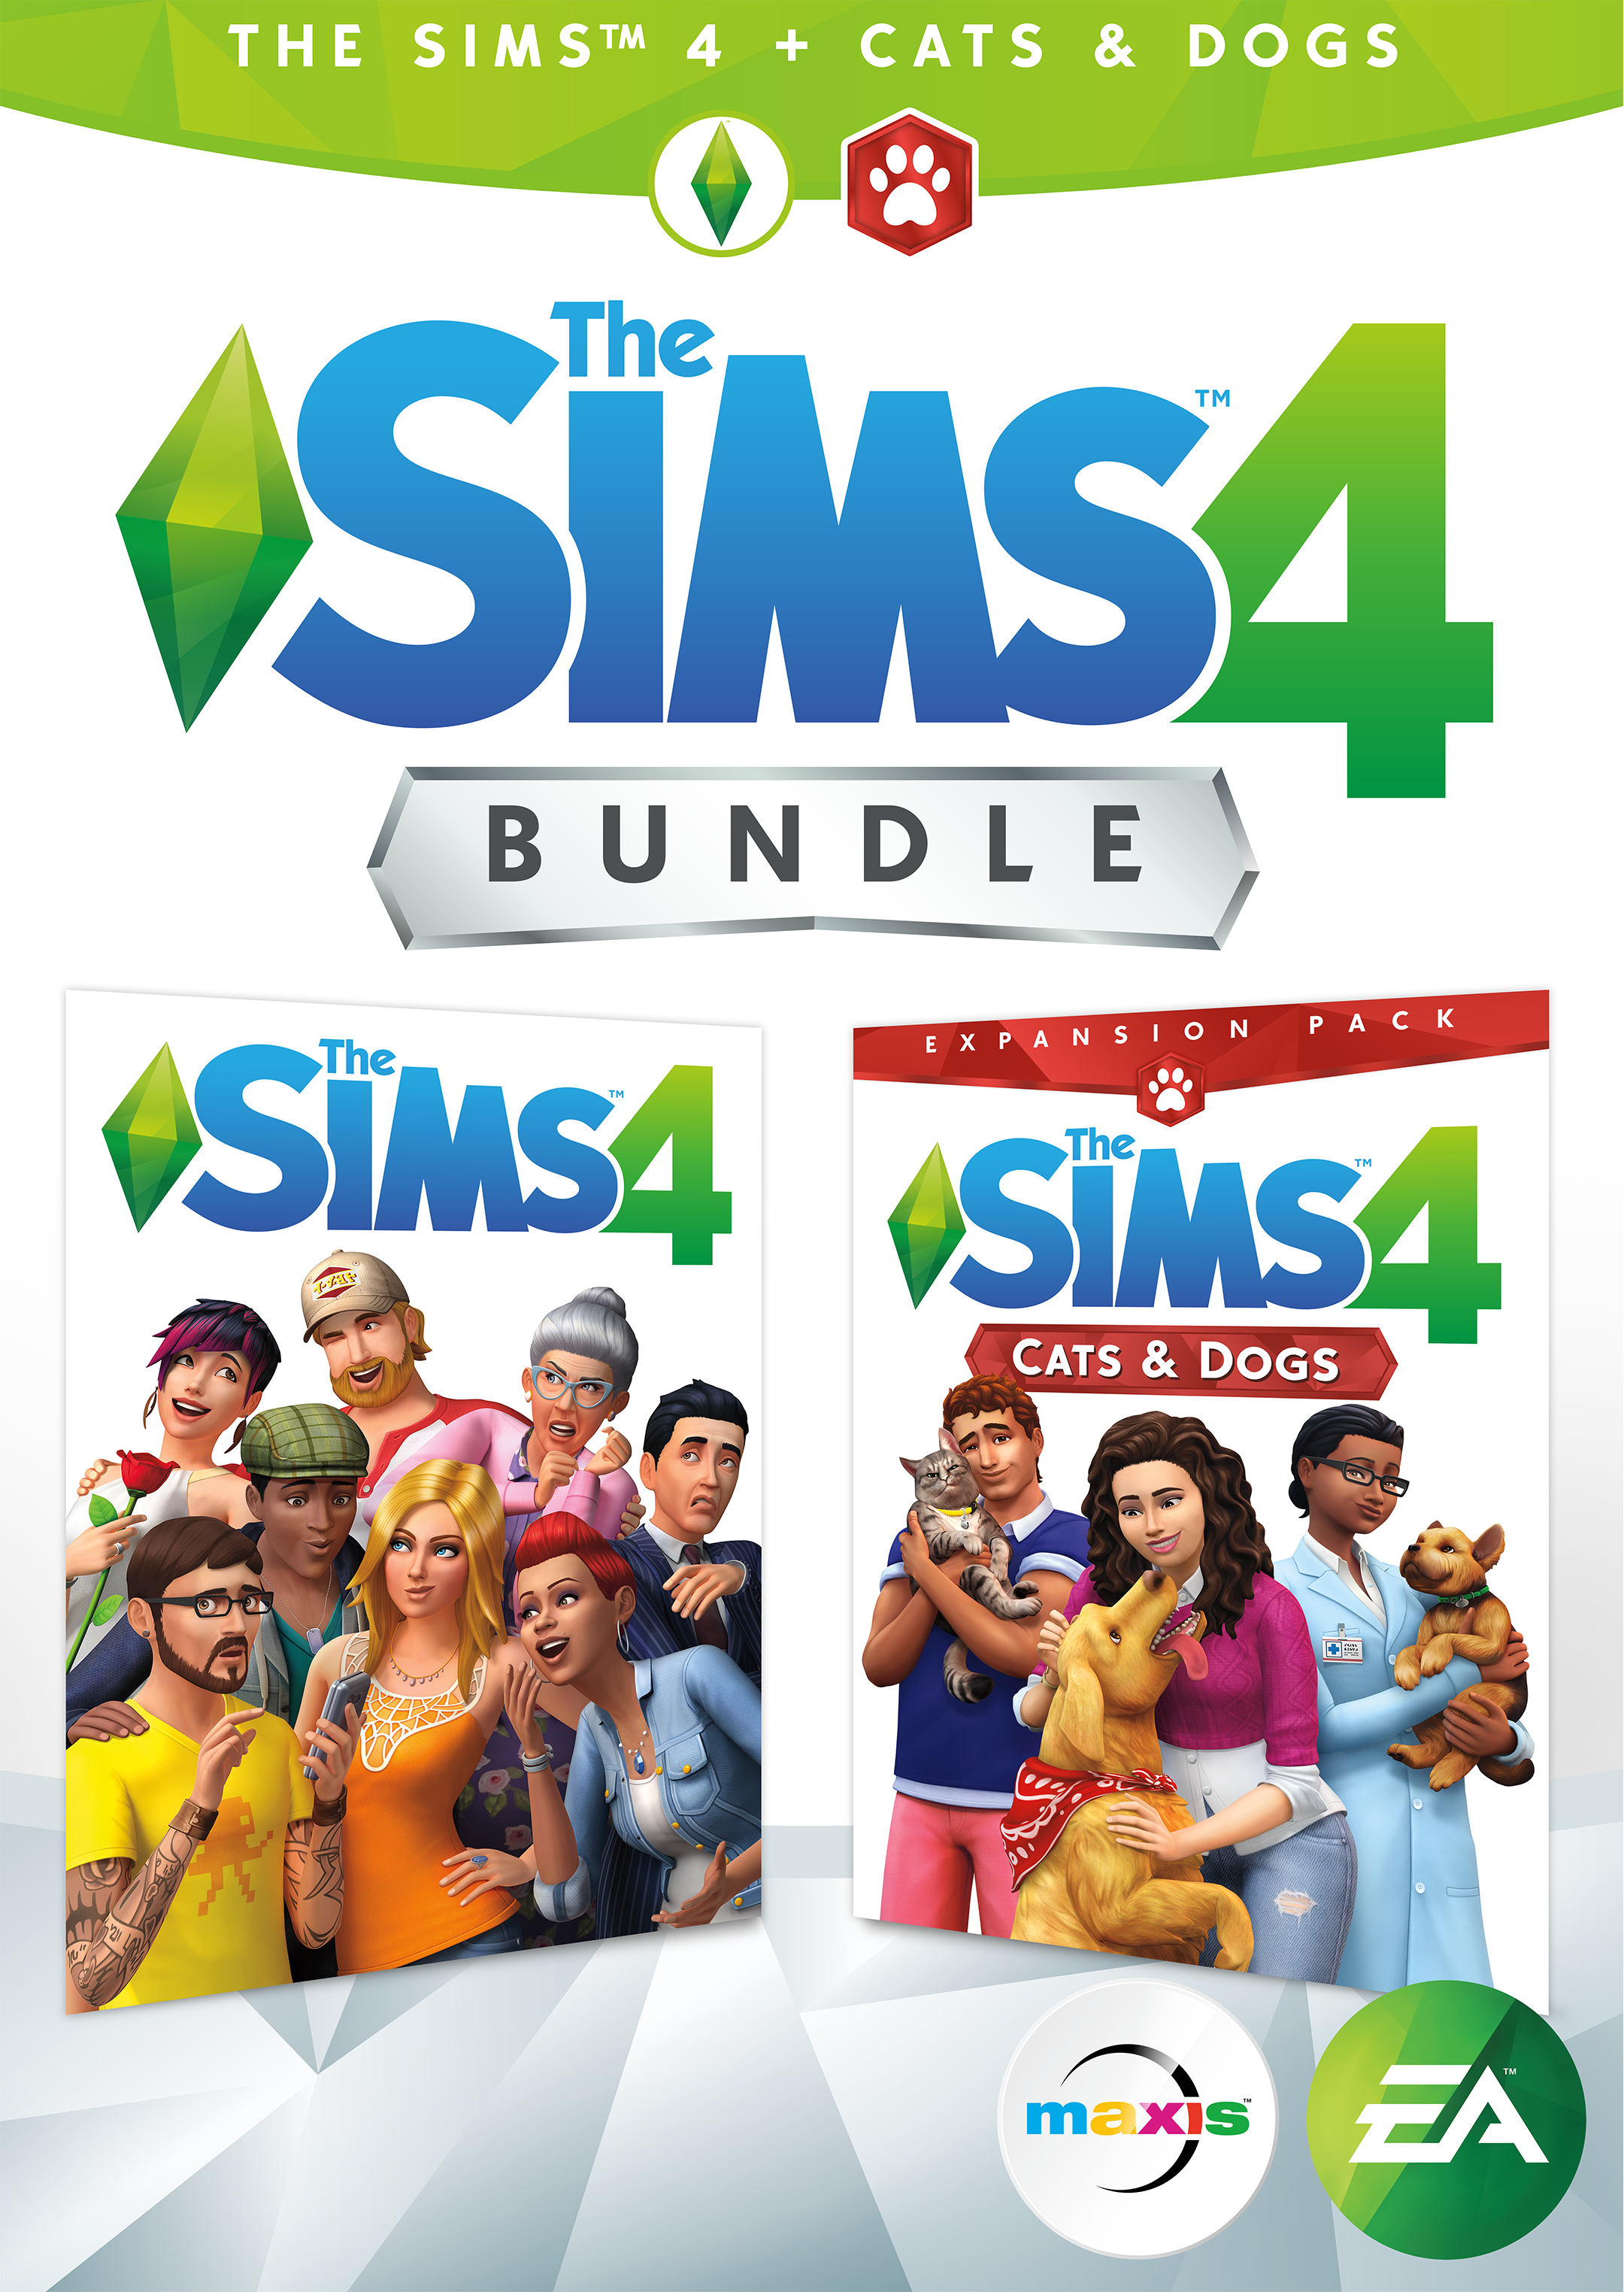 The Sims 4 Plus Cats & Dogs Bundle